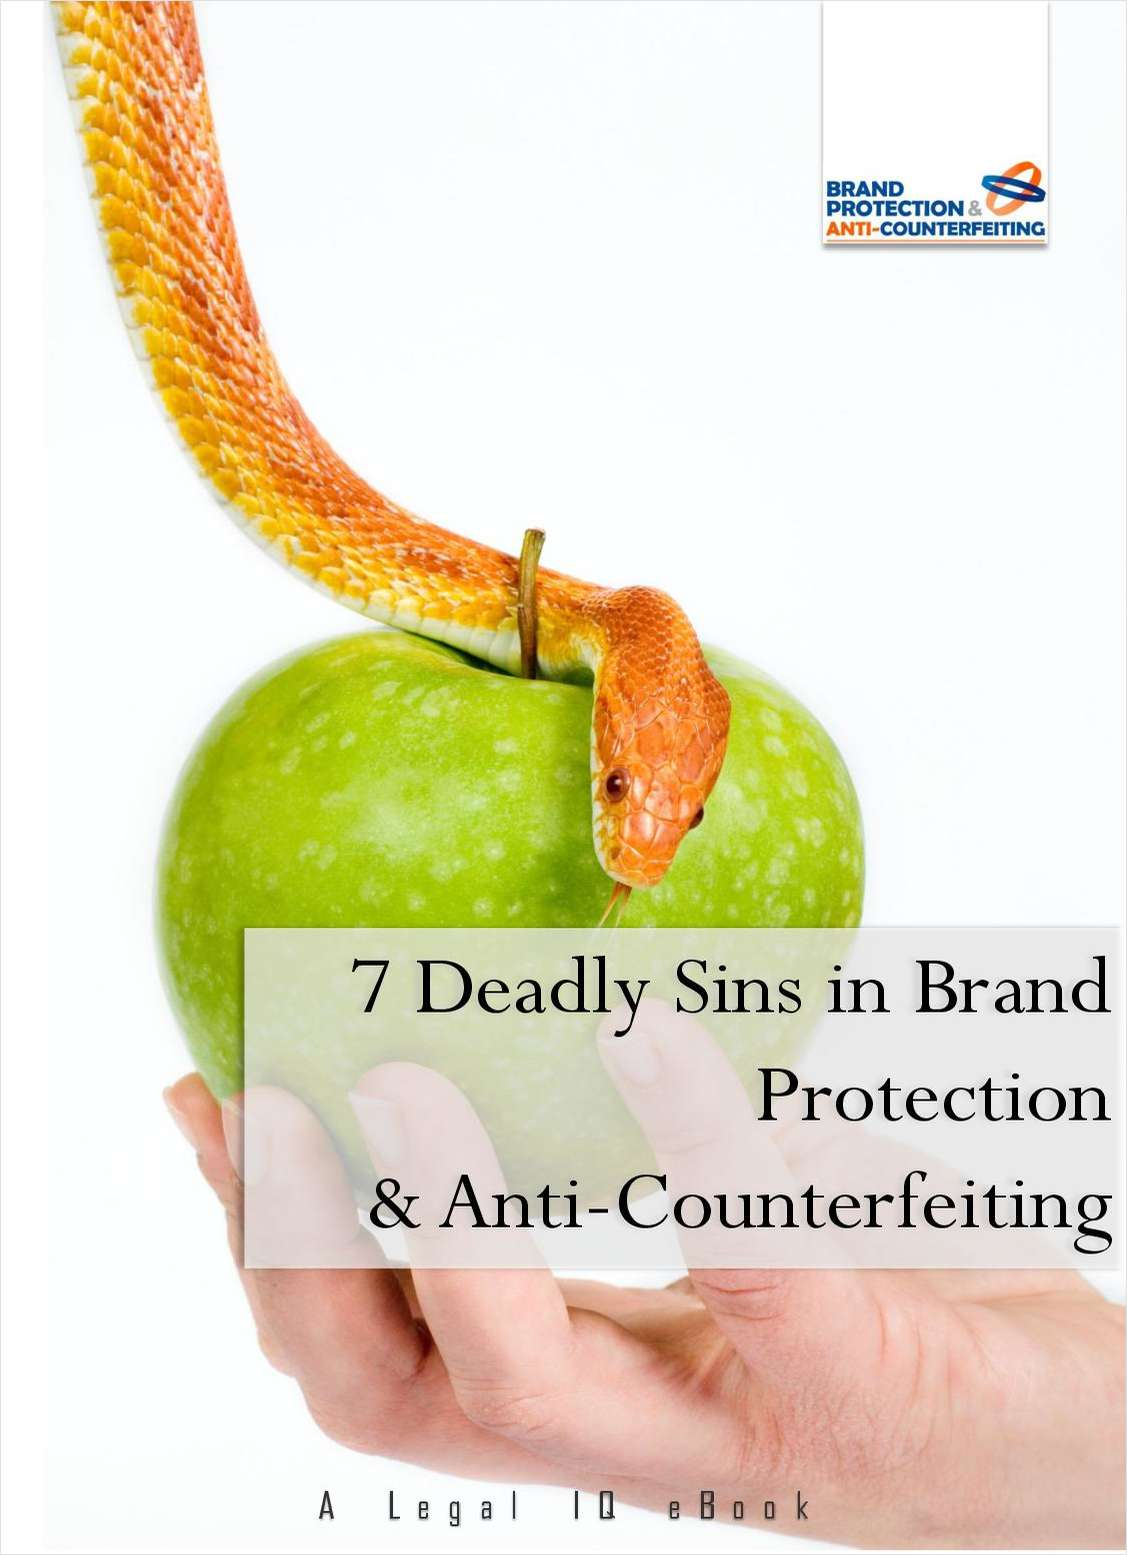 7 Deadly Sins in Brand Protection & Anti-Counterfeiting